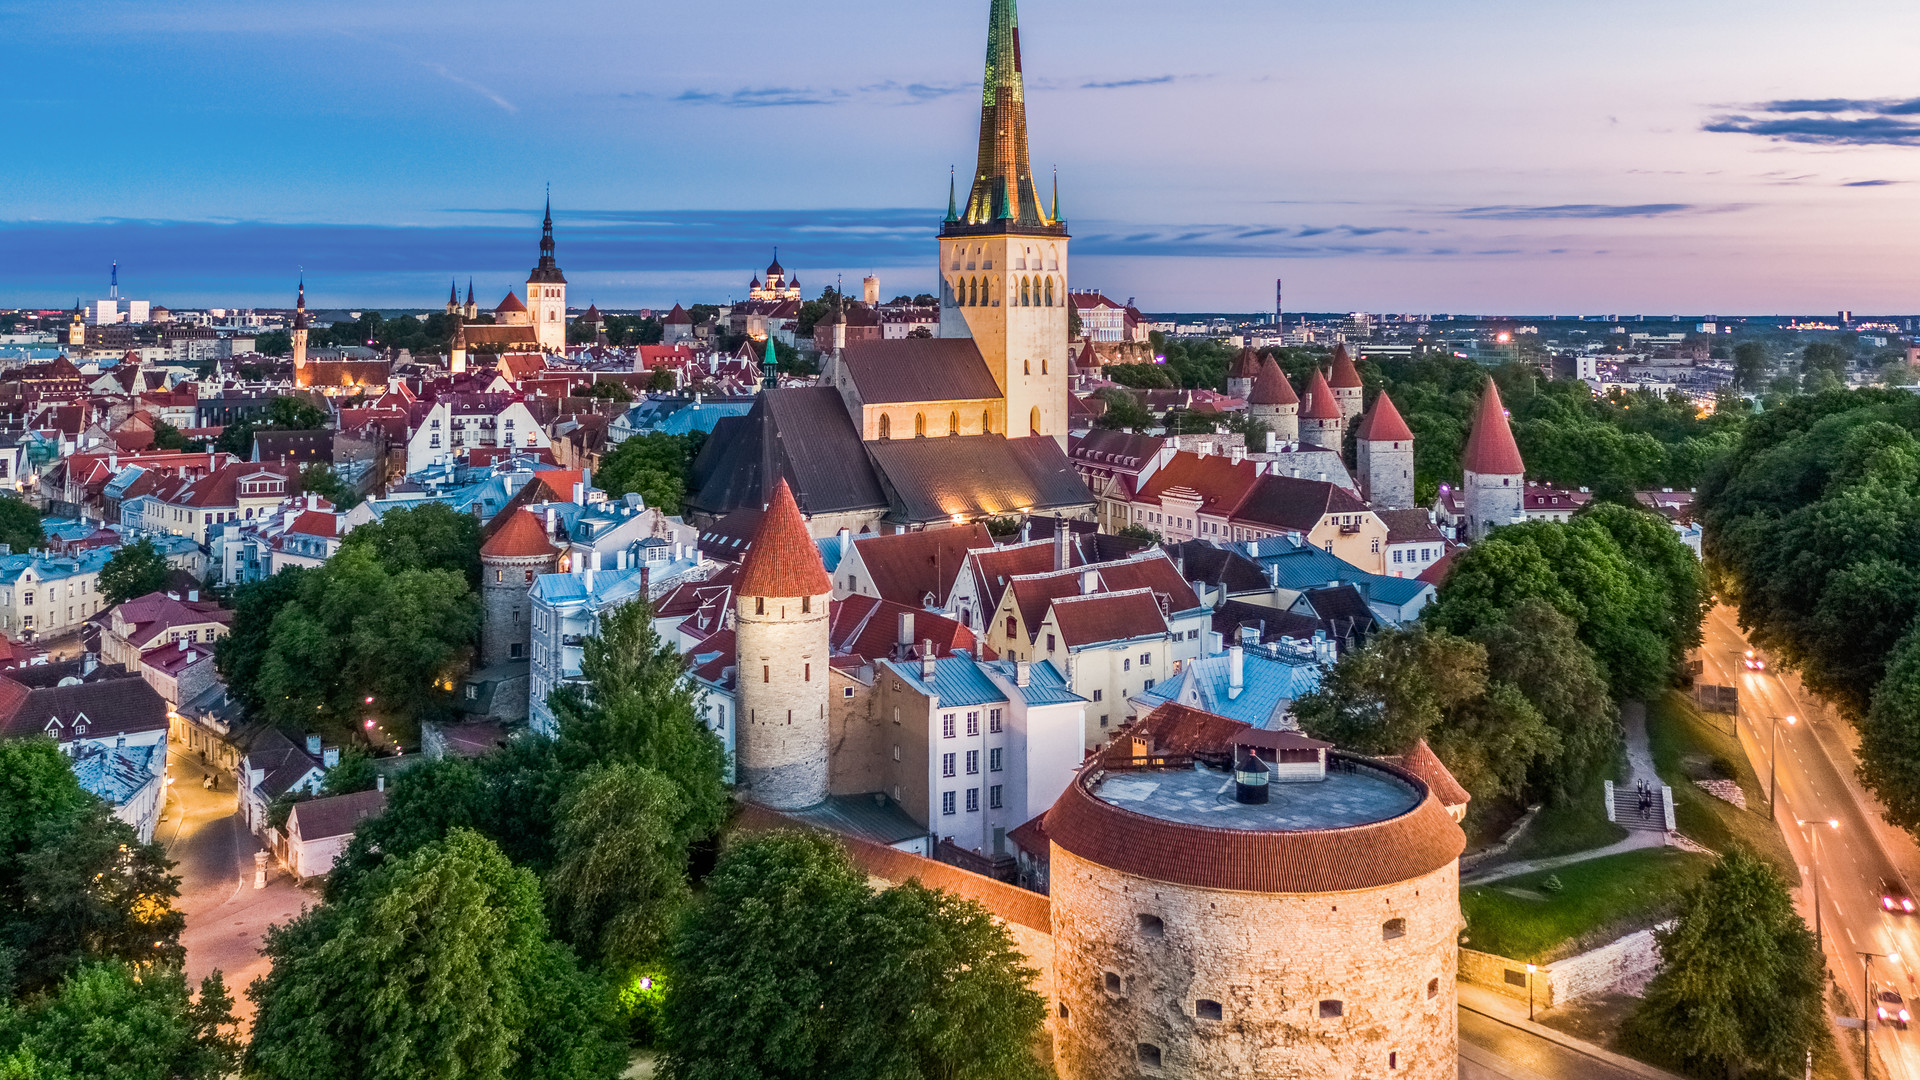 An aerial view of the Tallinn Castle